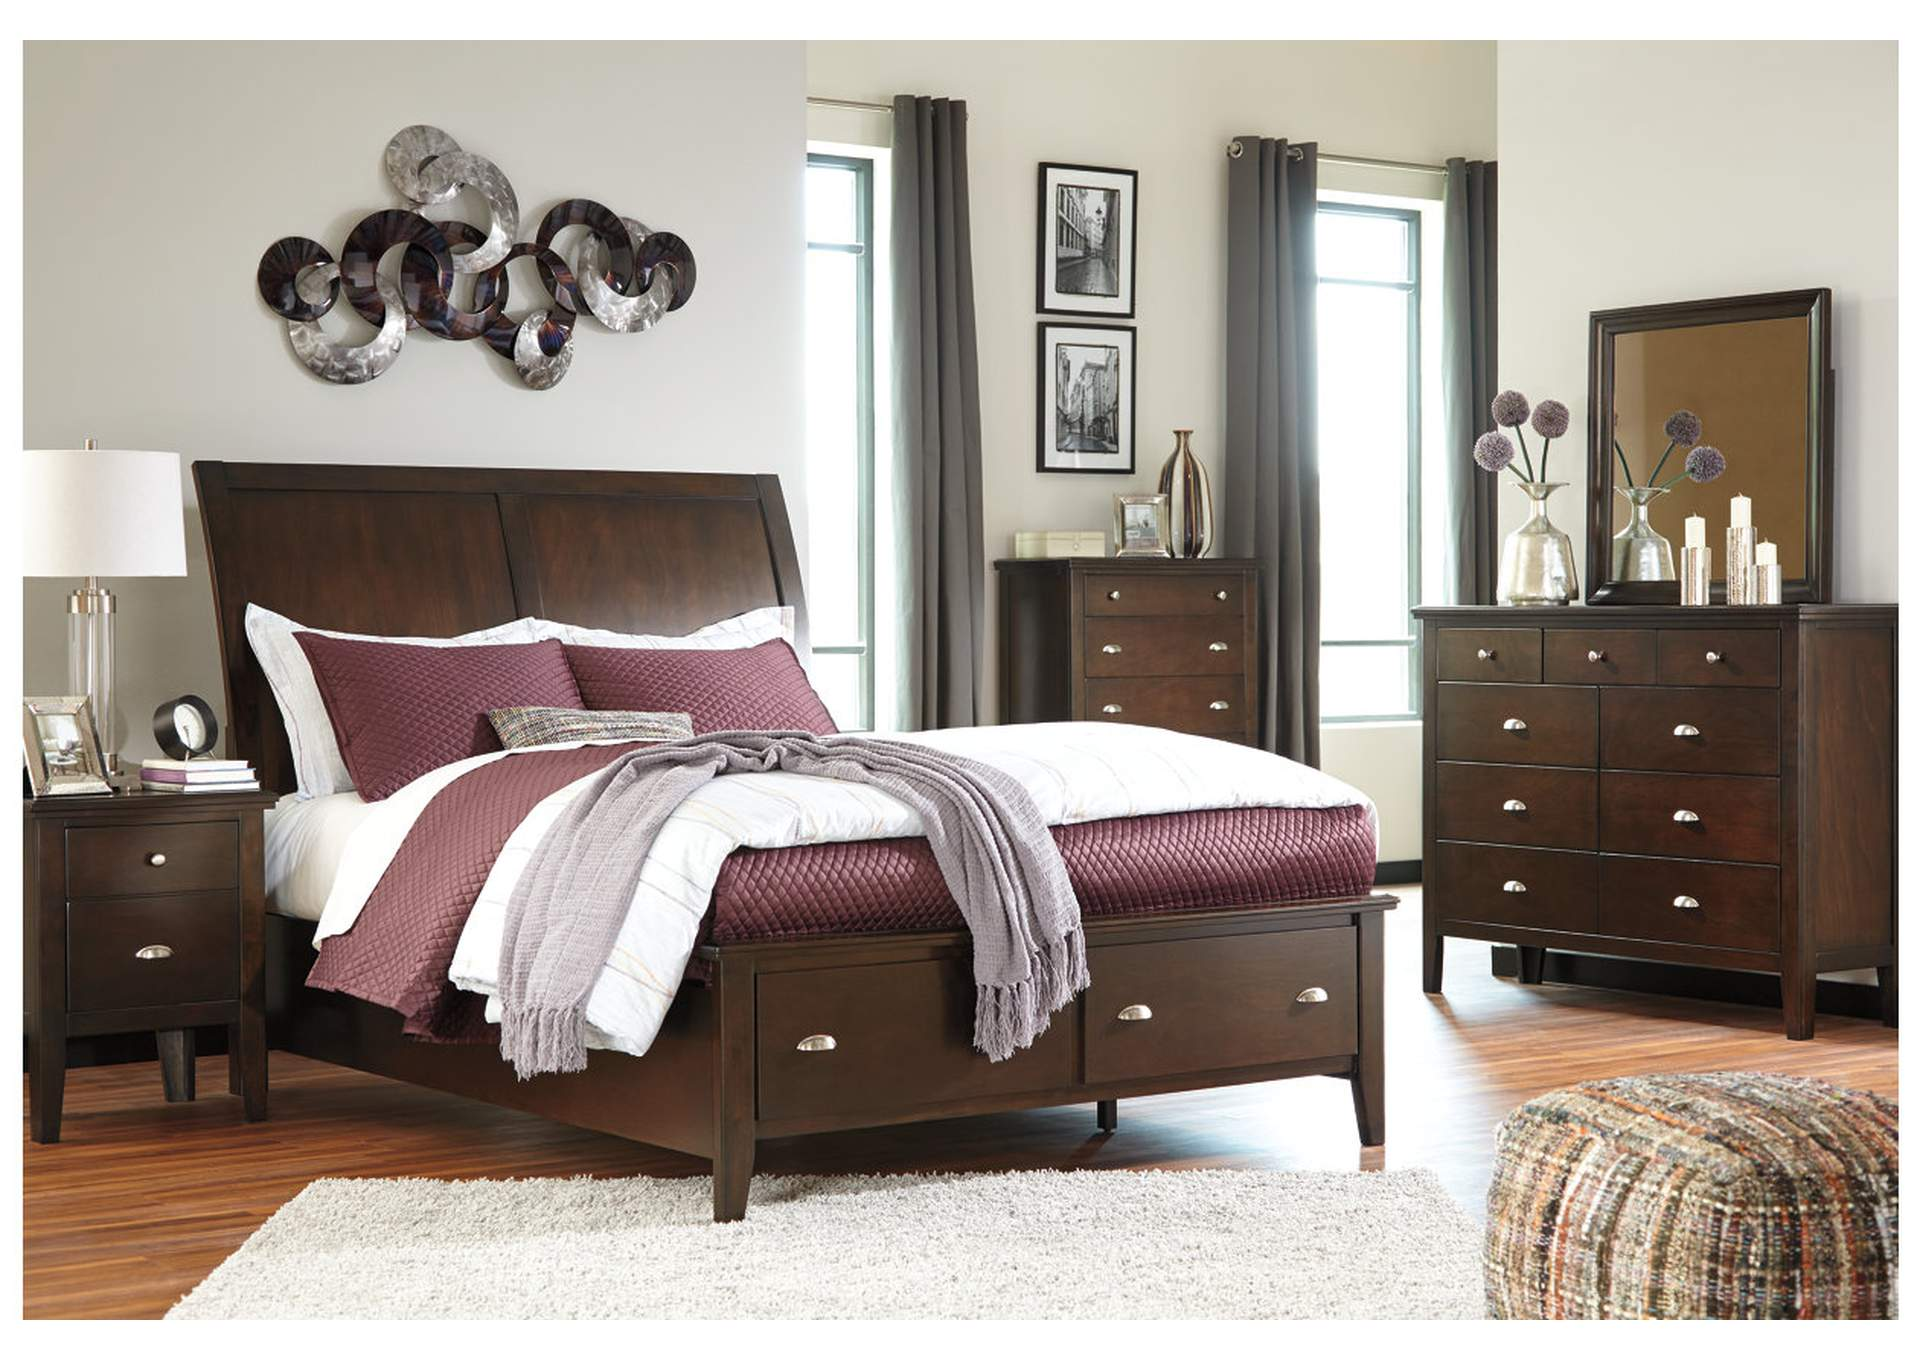 Evanburg Brown California King Sleigh Storage Bed w/Dresser, Mirror & Drawer Chest,Signature Design By Ashley